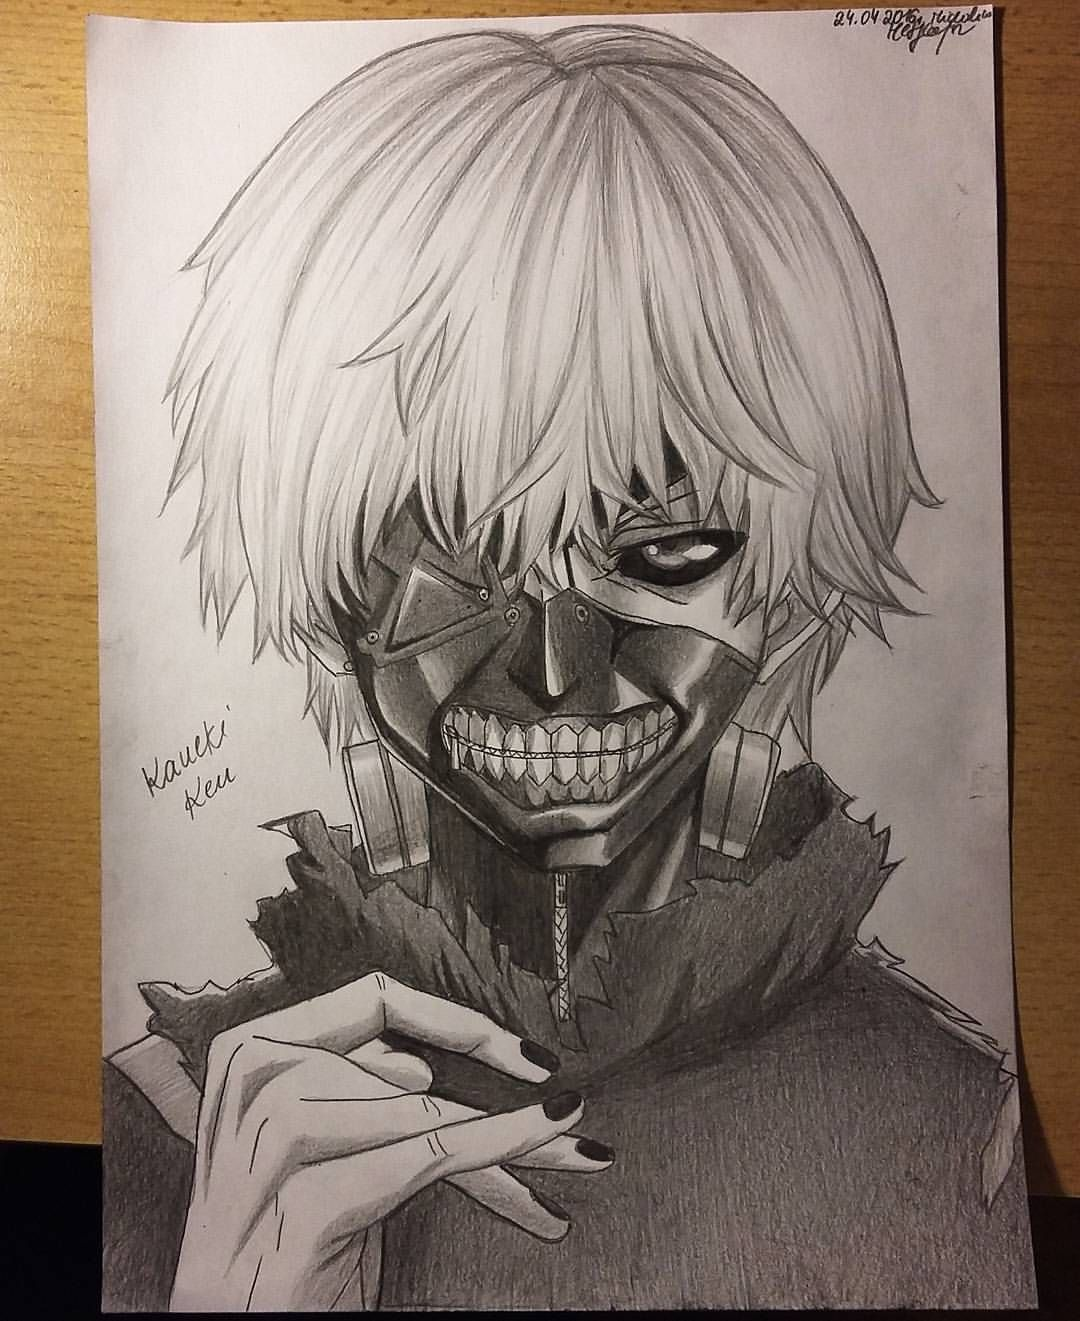 "arteyata on Instagram: ""Done! My drawing of Kaneki Ken, Tokyo Ghoul"